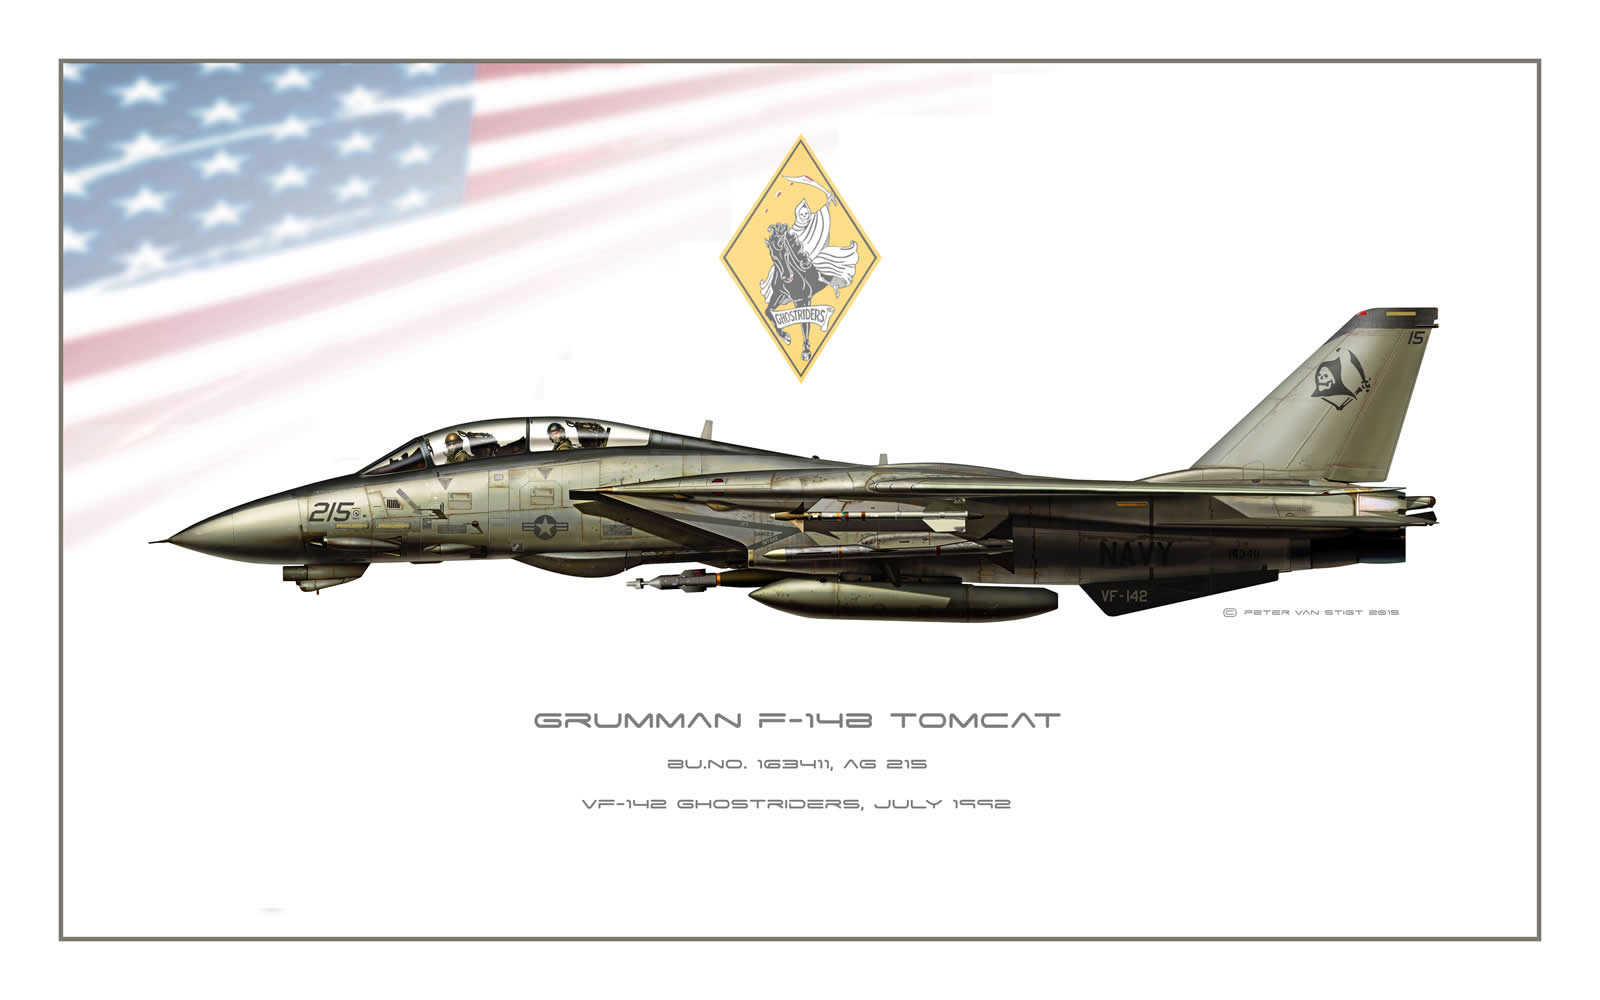 VF-142 Ghost Riders Low Viz F-14 Tomcat Profile